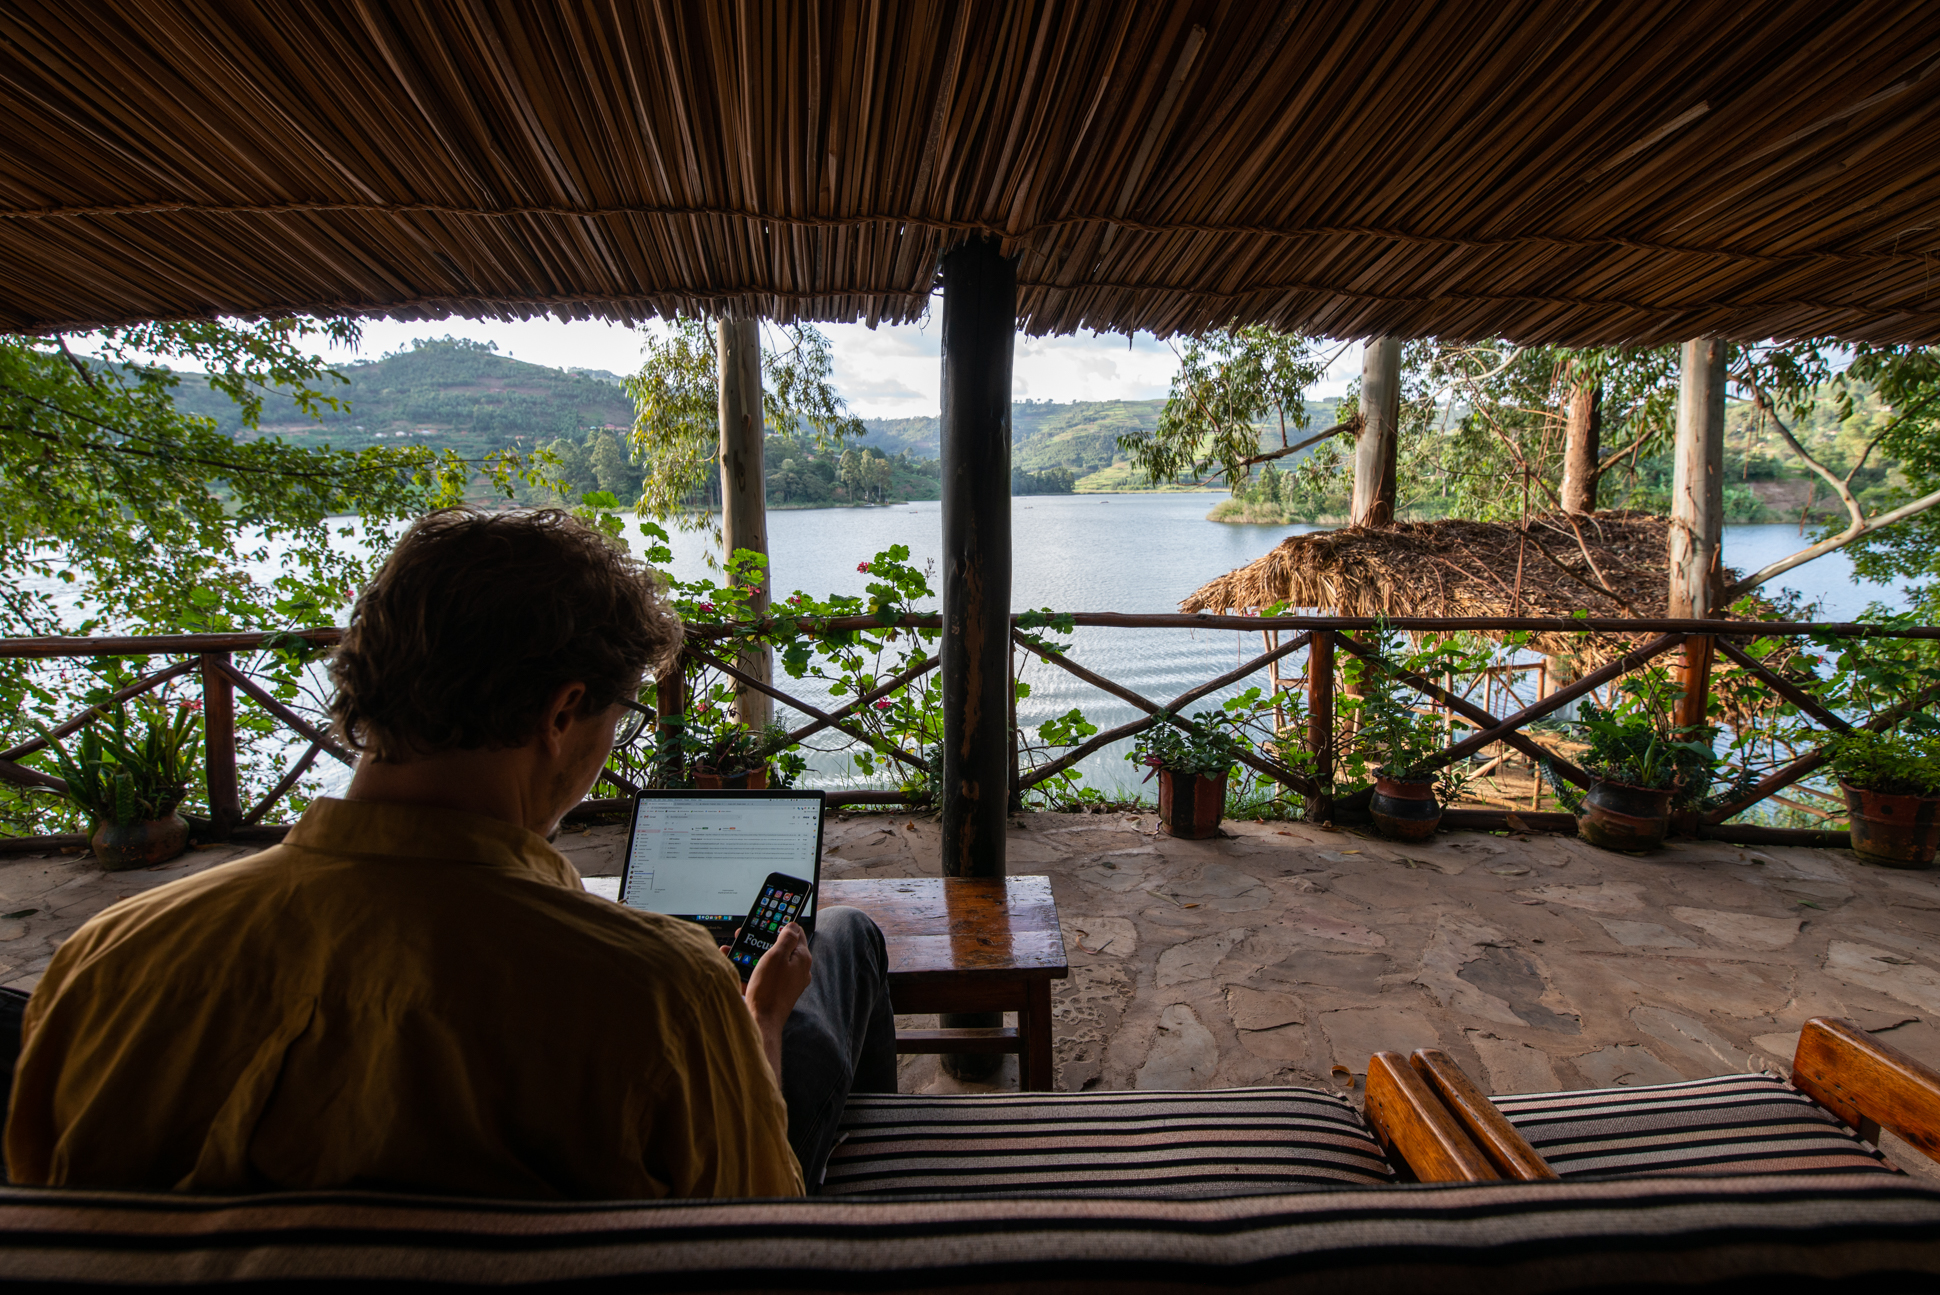 Digital Nomad at work at lake Bunyonyi with a lake view with islands and mountains. Ellis photography.